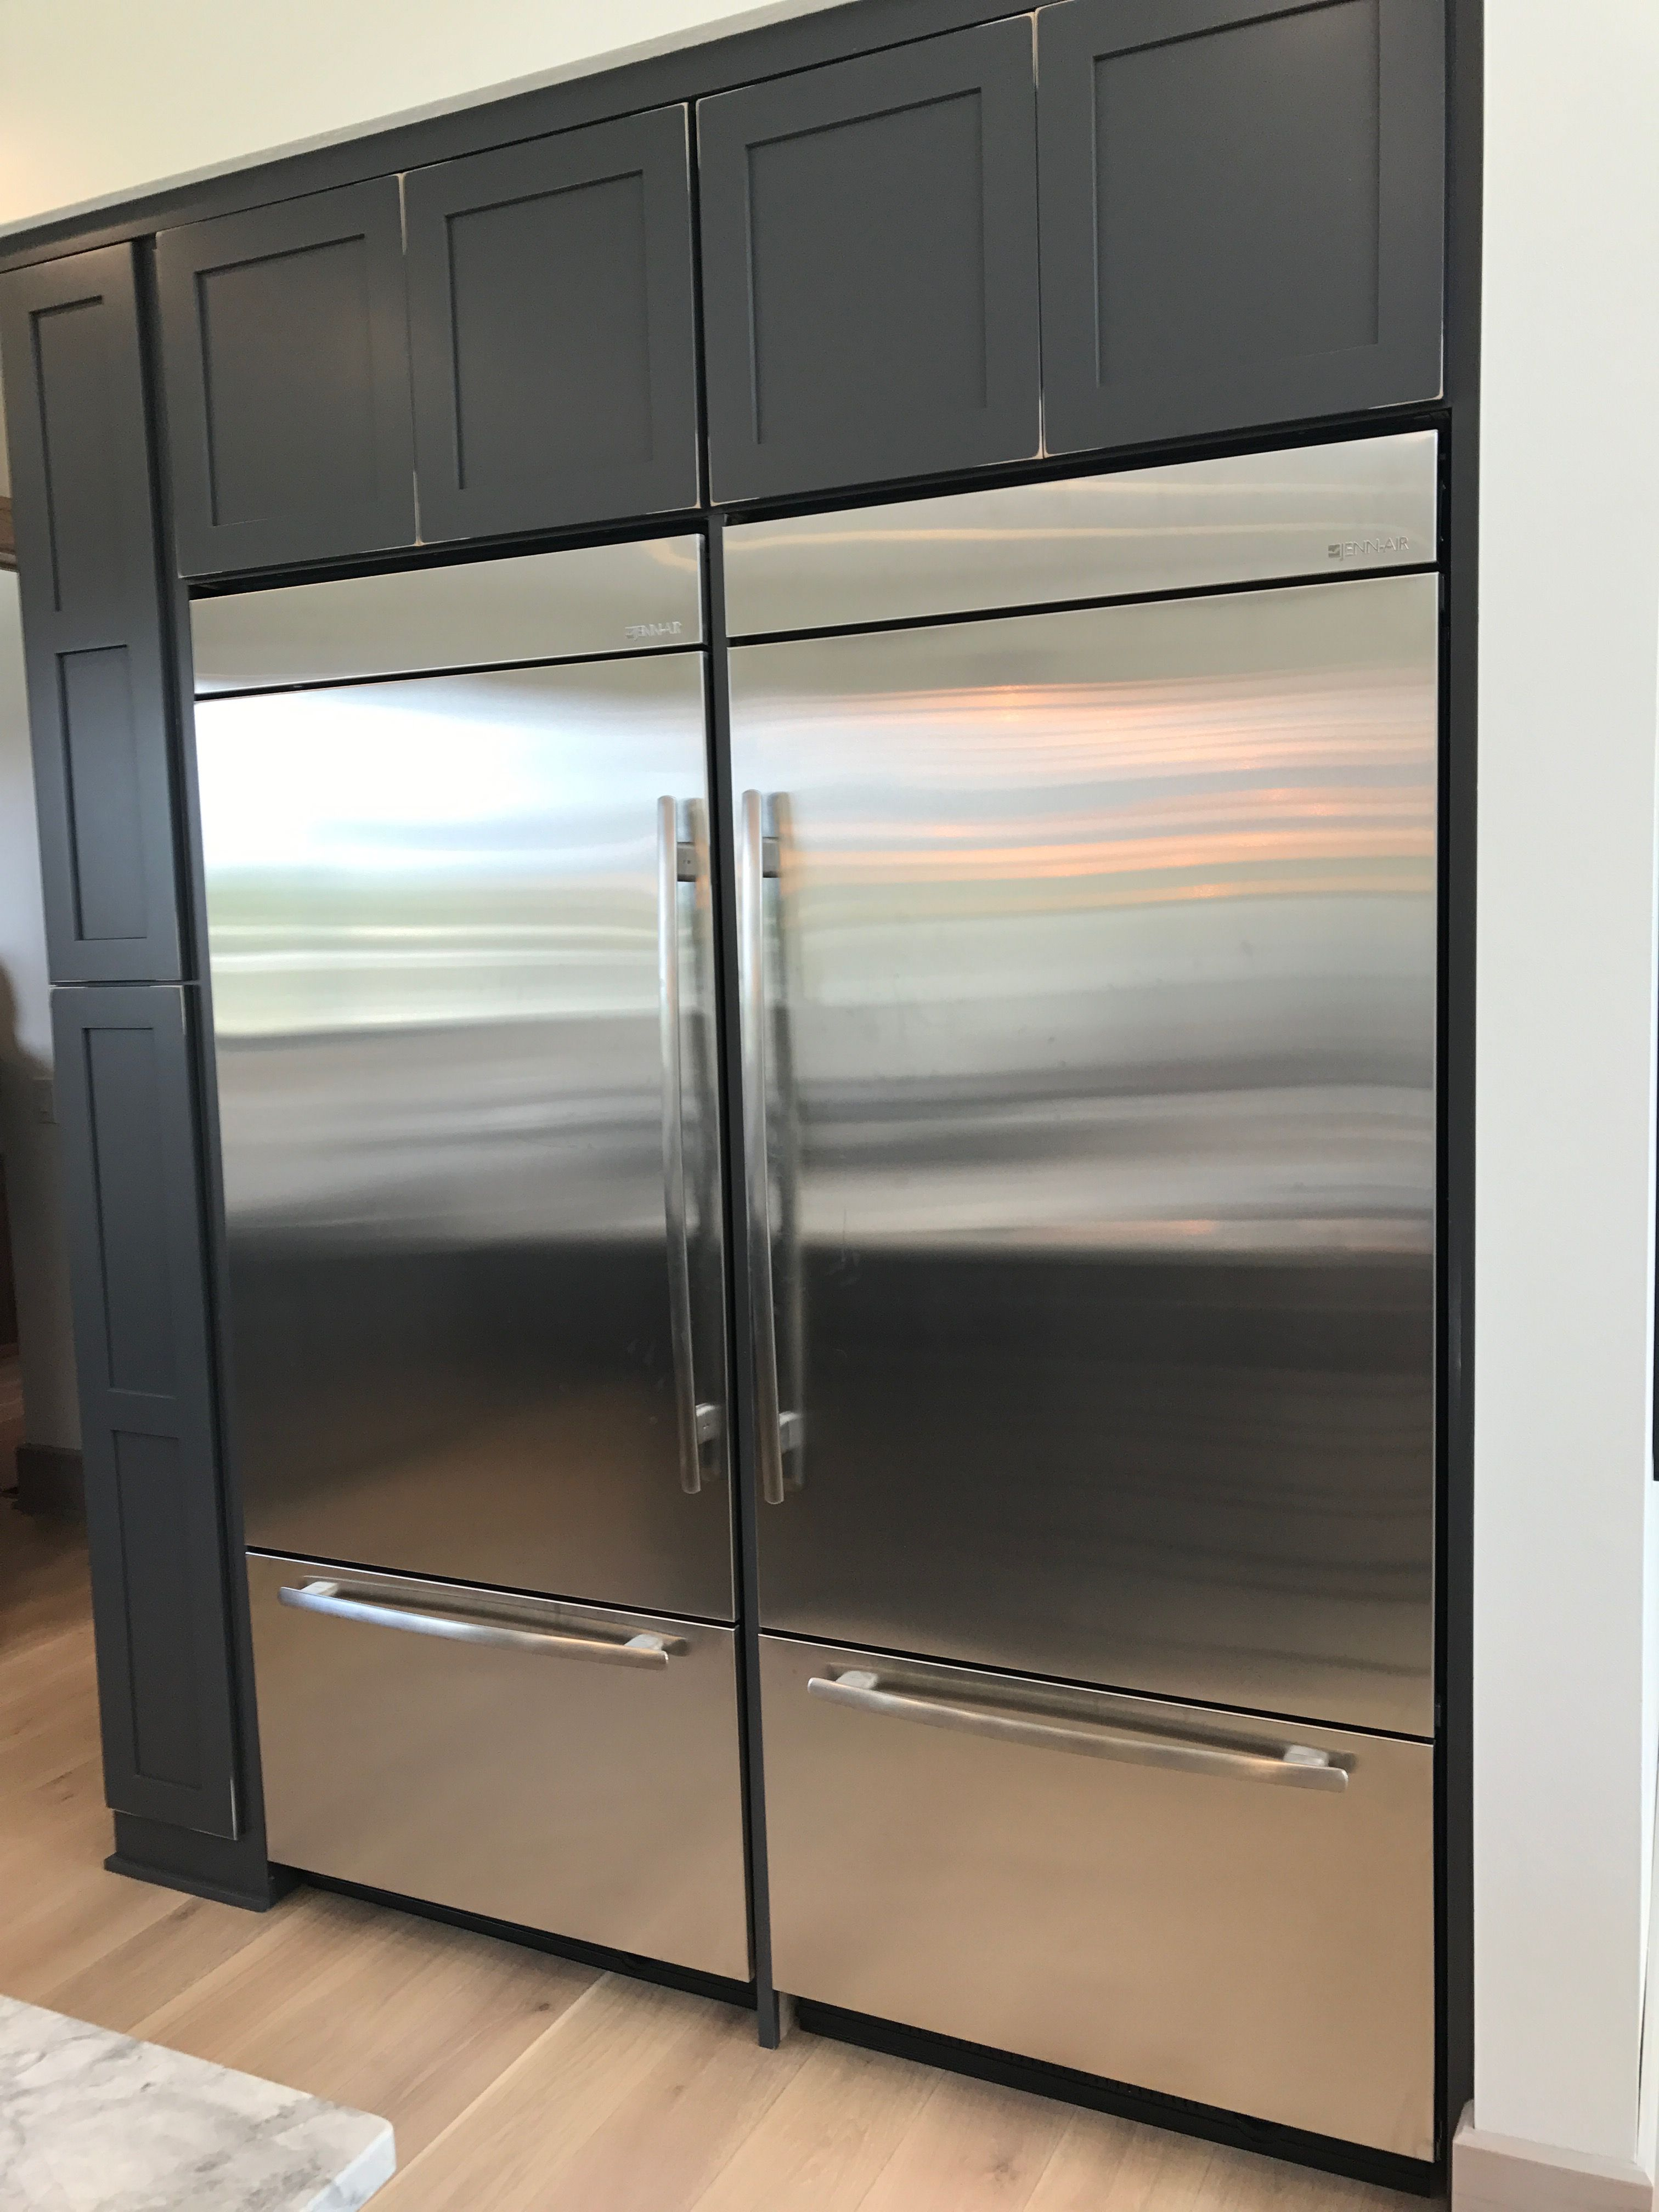 Two Fridges Side By Side A Must Home Kitchens Kitchen Home